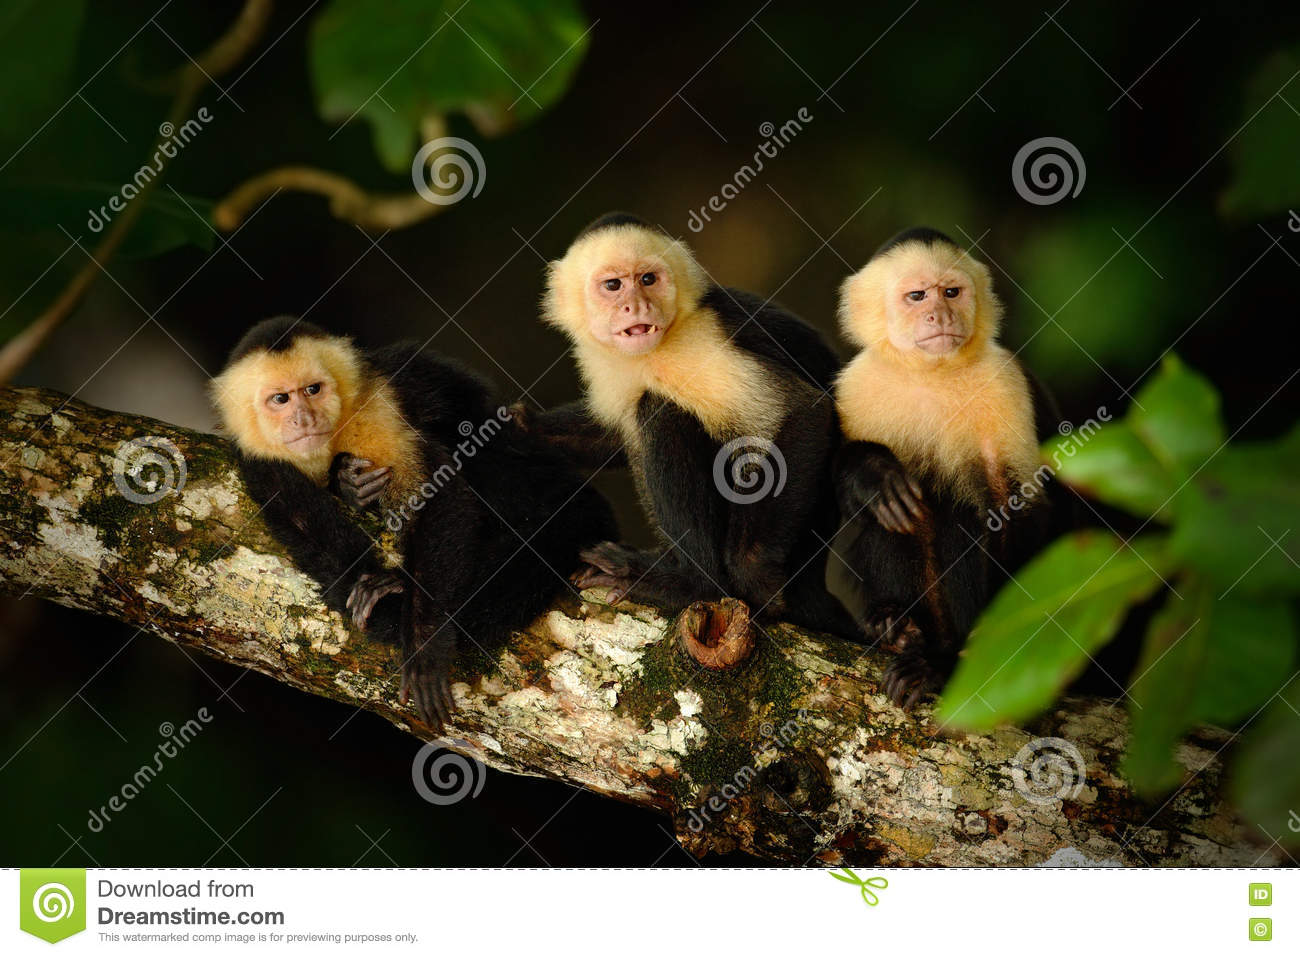 White-headed Capuchin, Cebus capucinus, black monkey sitting on the tree branch in the dark tropic forest, animal in the nature ha